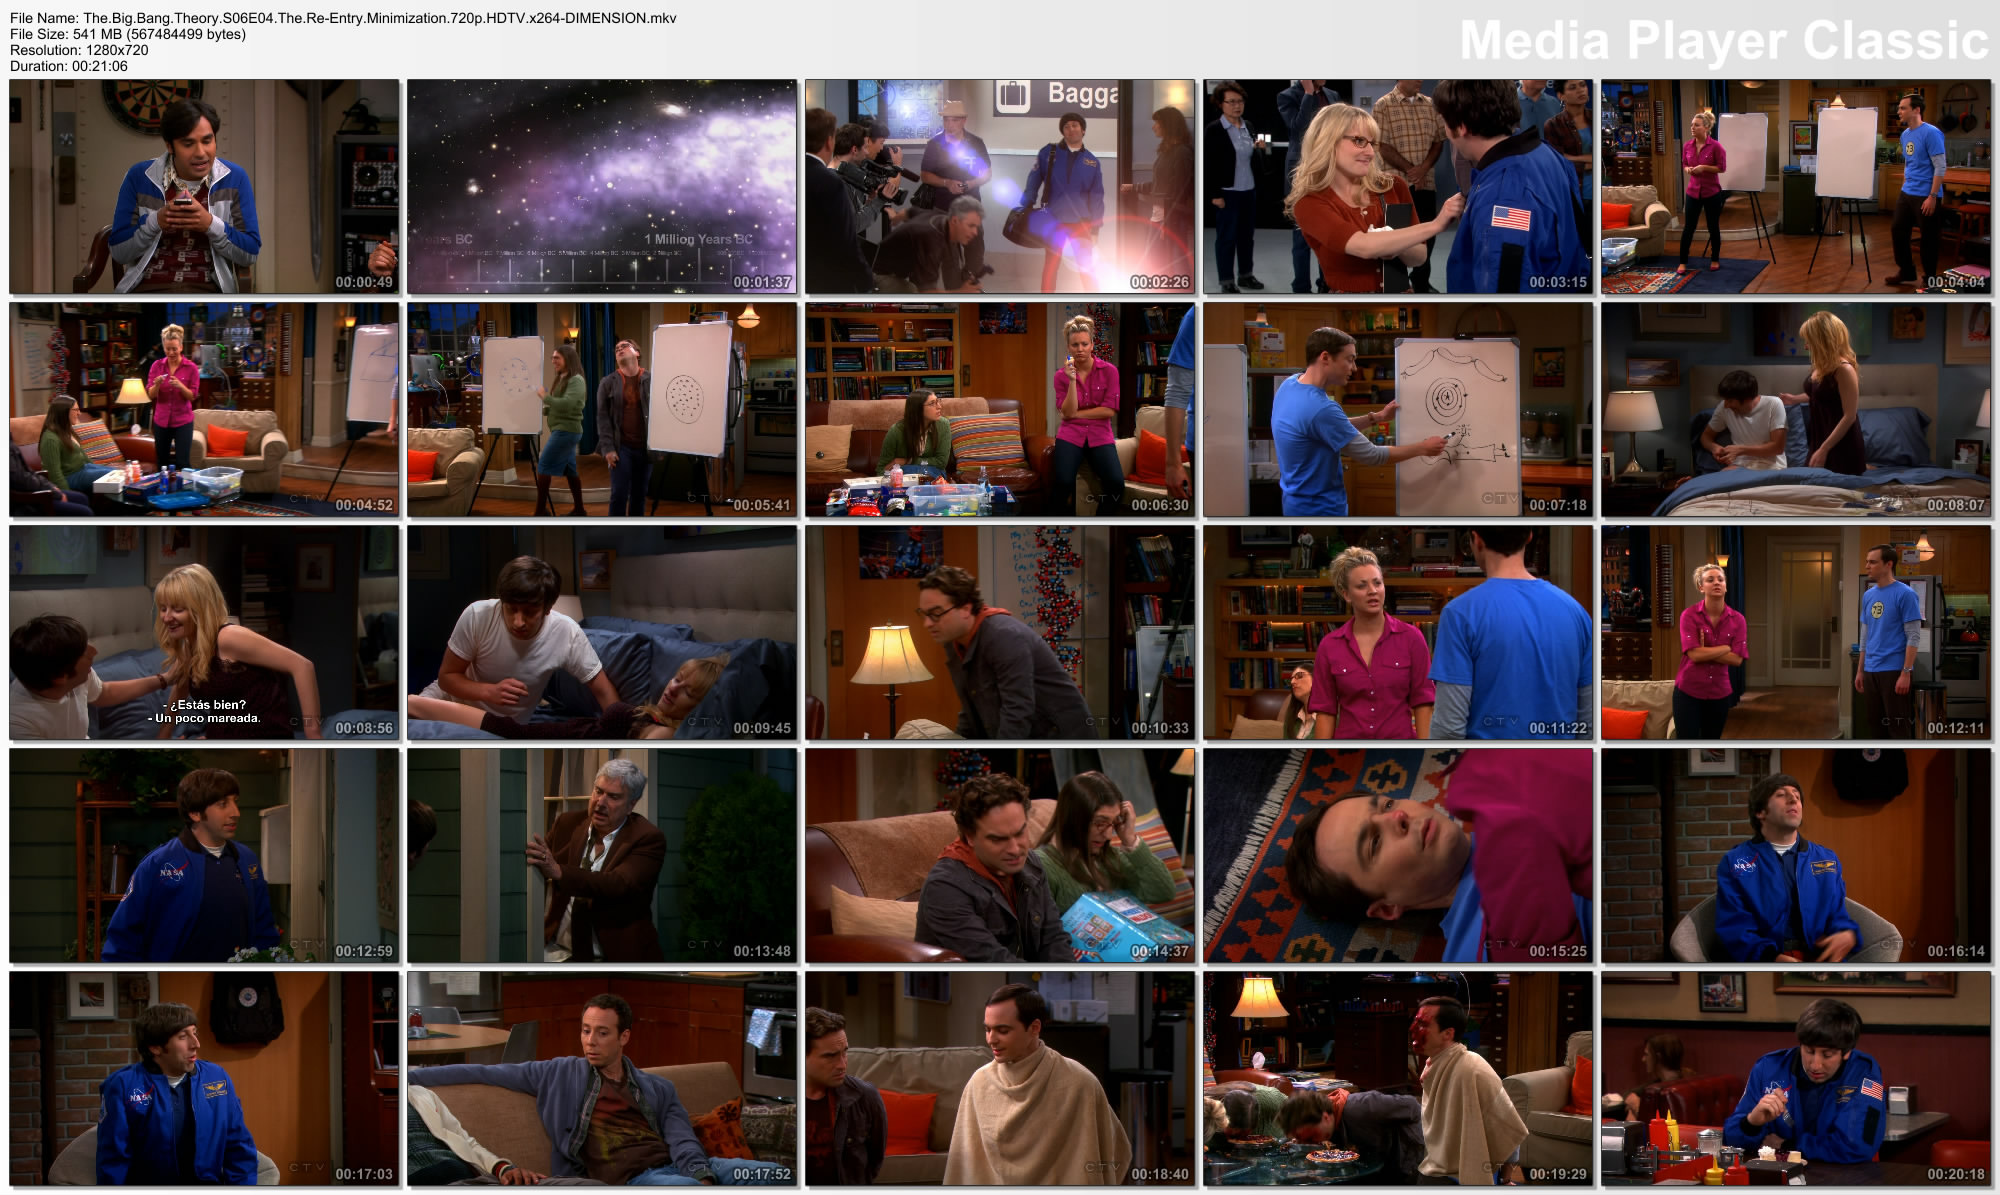 [Serie] The Big Bang Theory - Temporada 6 - Episodio 4 [HD]